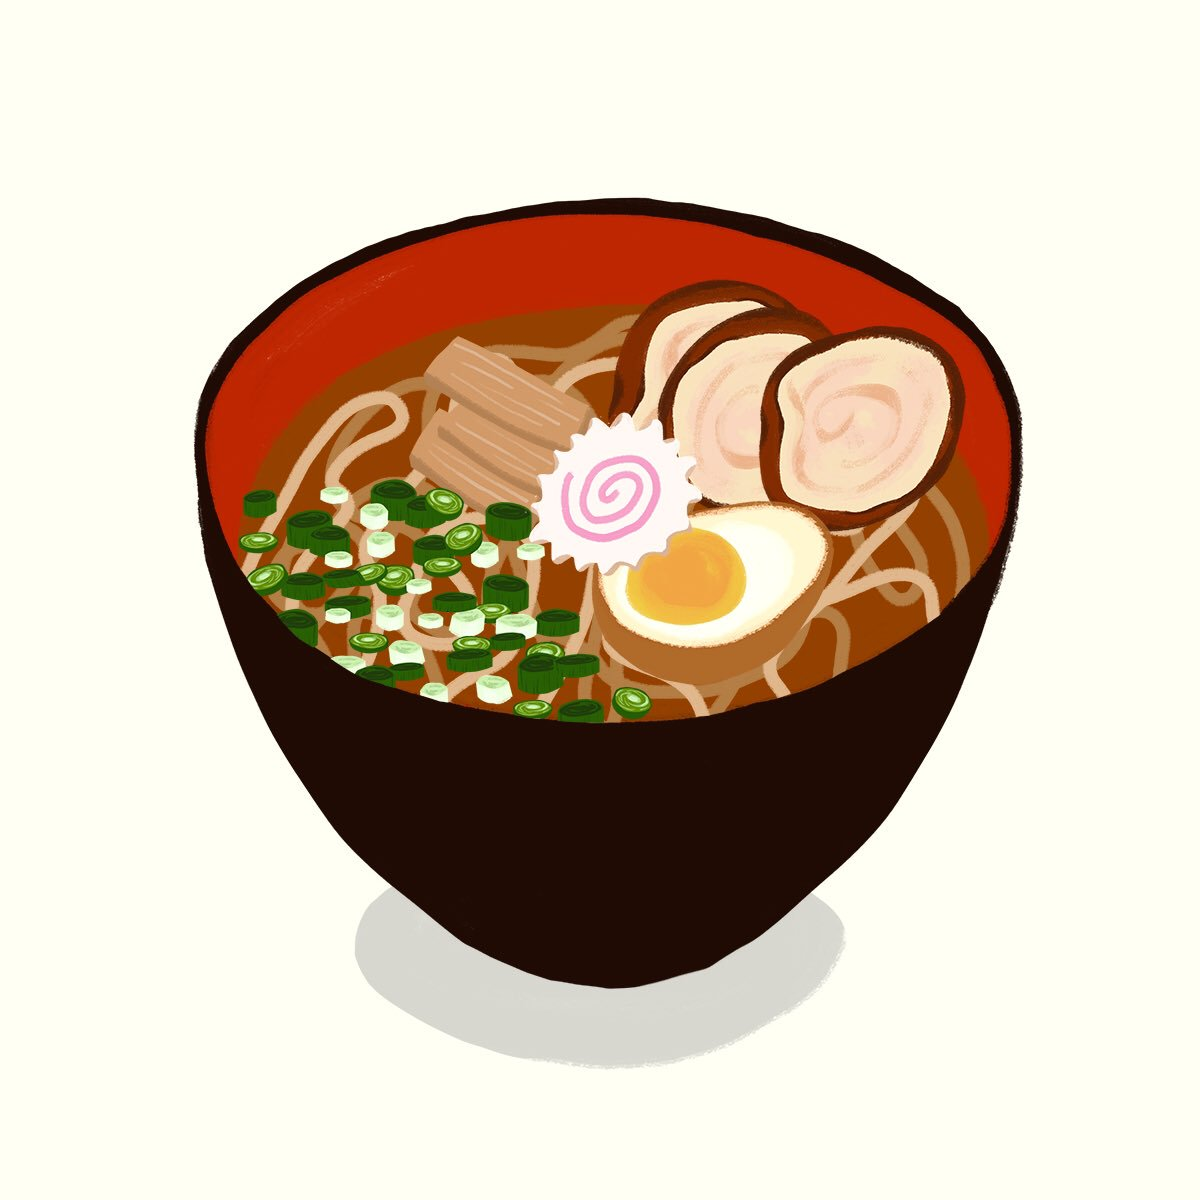 #ramen #hangry #foodforthought #japanesefood #illustratedfood #foodillustration #ramenillustration